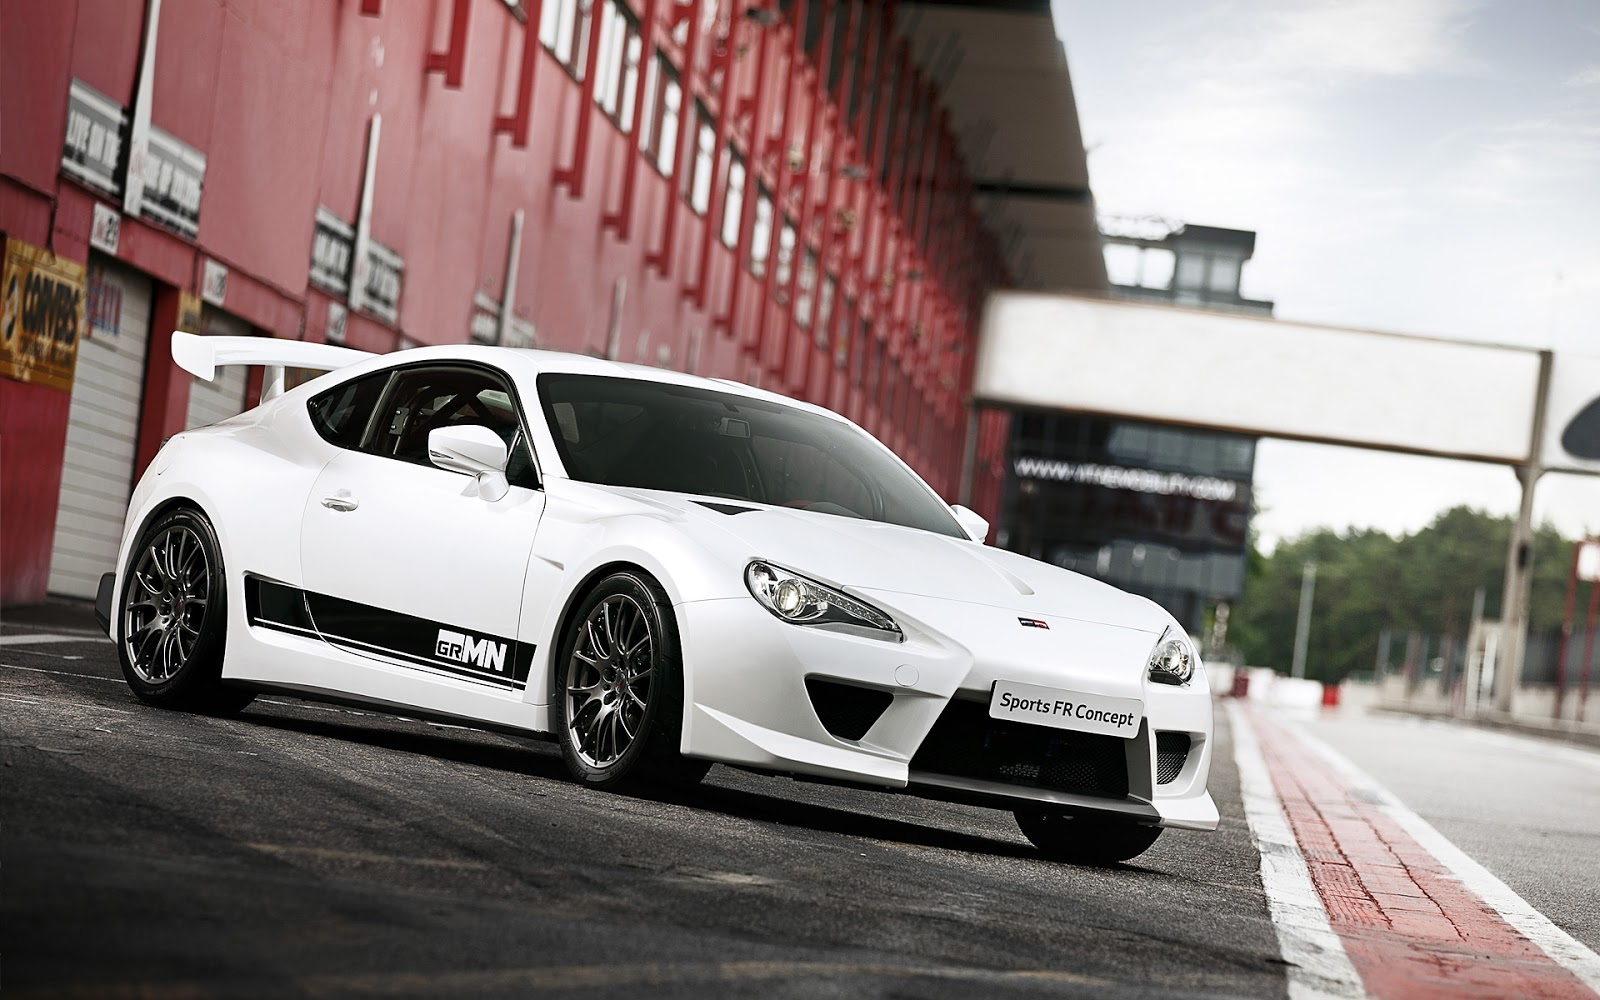 20 toyota gt86 wallpapers car enthusiast wallpapers. Black Bedroom Furniture Sets. Home Design Ideas